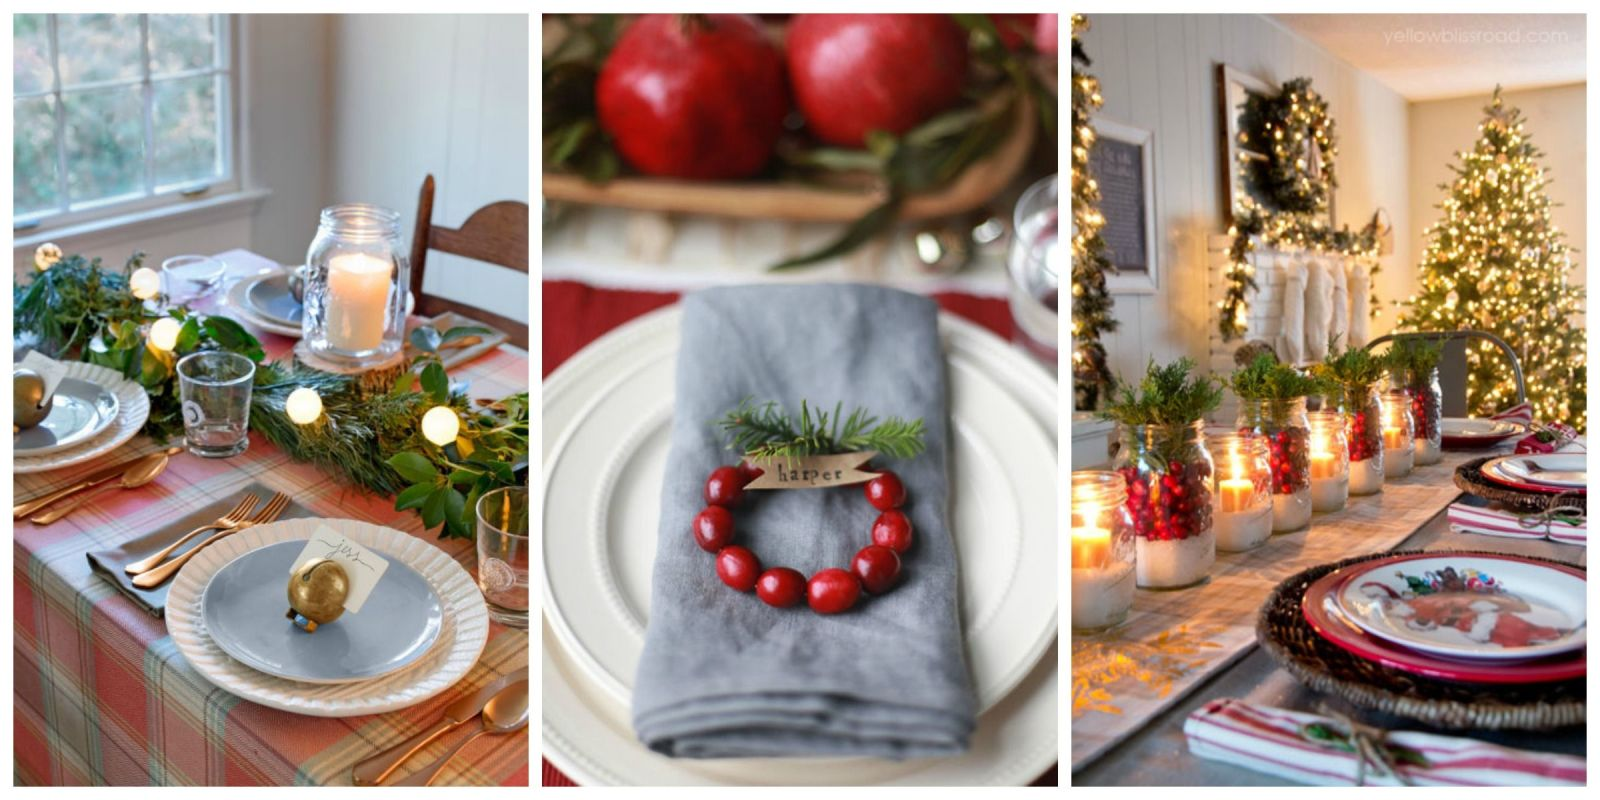 Country christmas table decoration ideas - 45 Best Christmas Table Settings Decorations And Centerpiece Ideas For Your Christmas Table